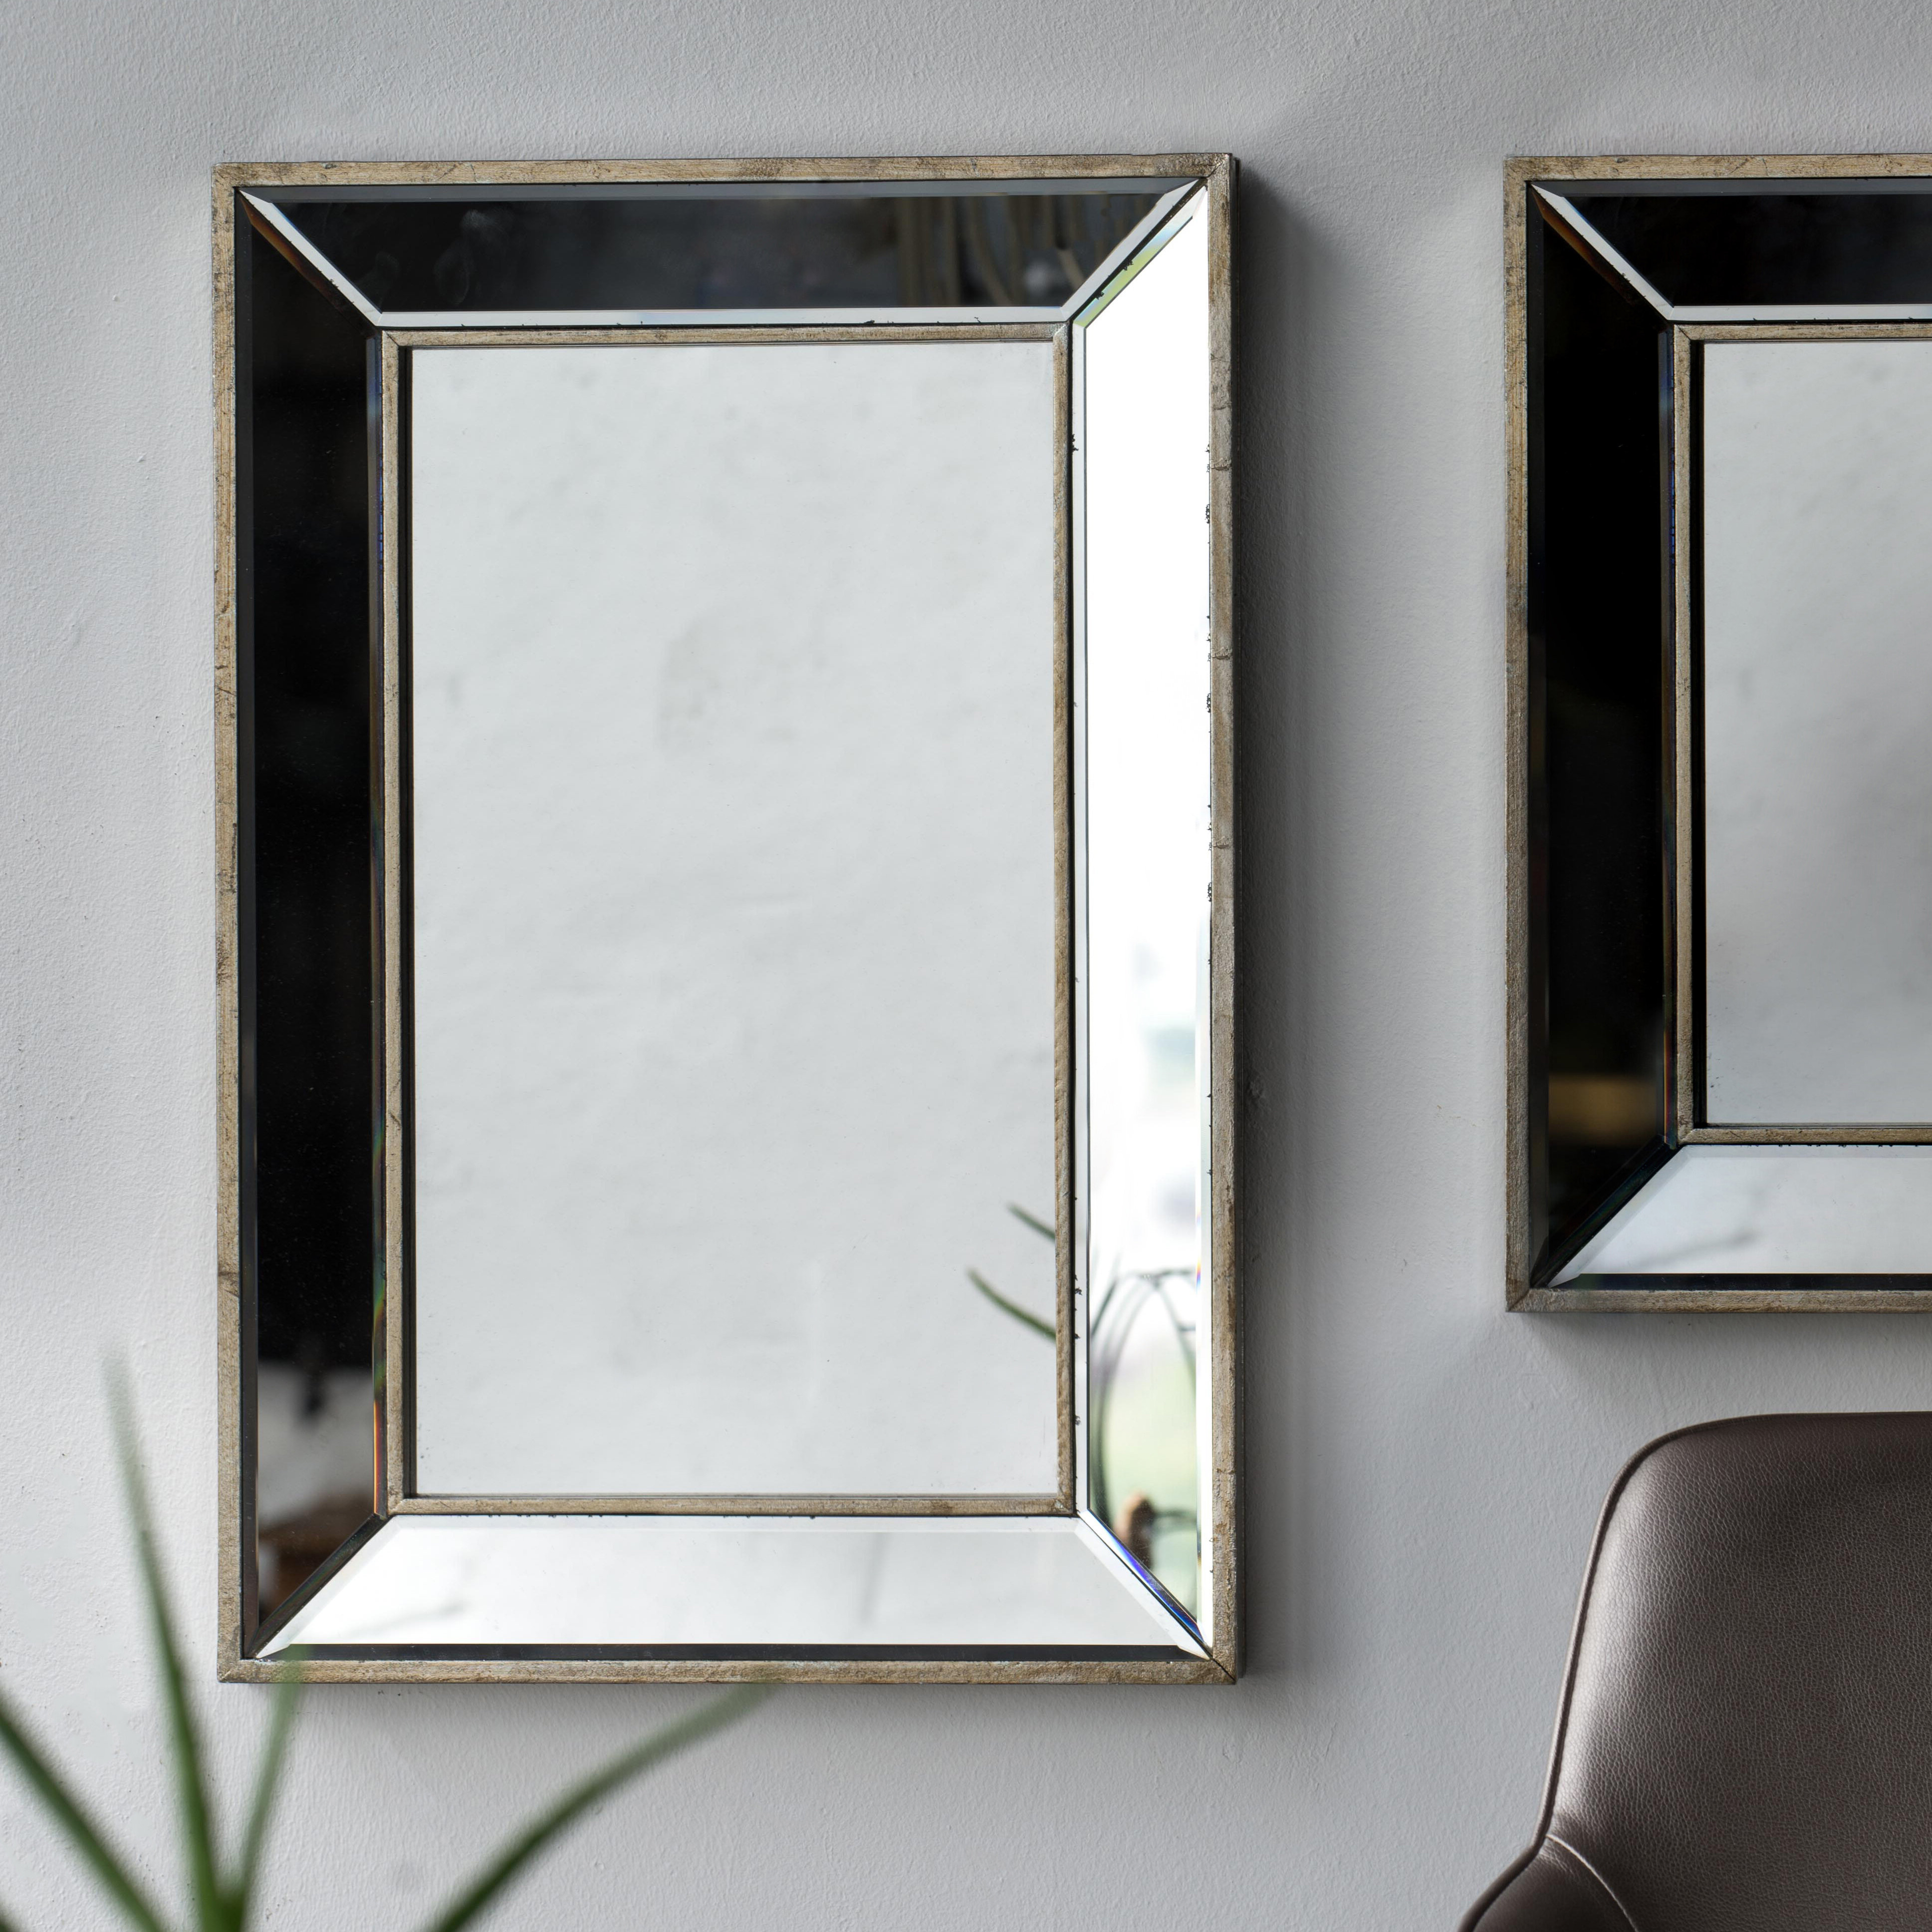 Fashionable Kapp Rectangle Accent Wall Mirror Throughout Lake Park Beveled Beaded Accent Wall Mirrors (View 15 of 20)